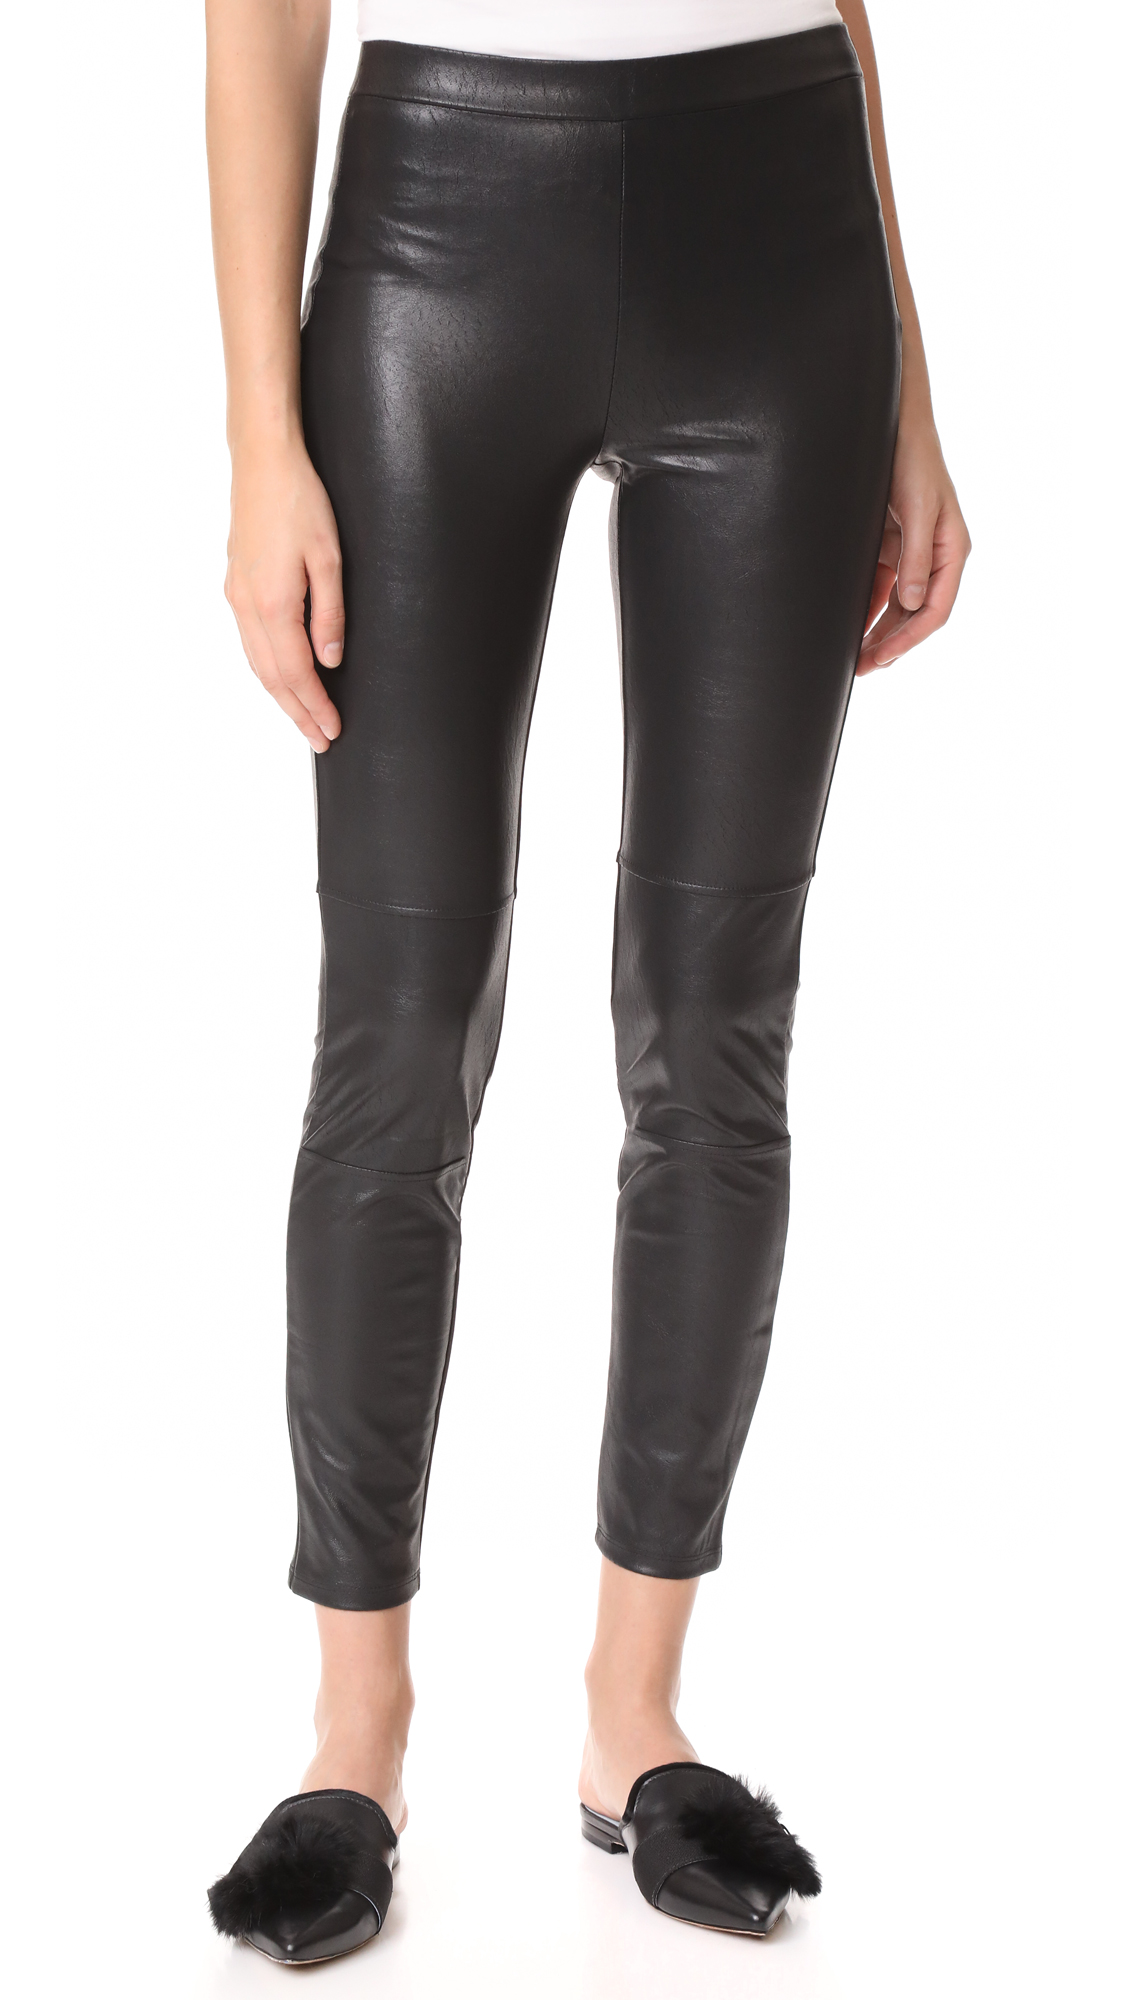 Ella Moss Faux Leather Leggings - Black